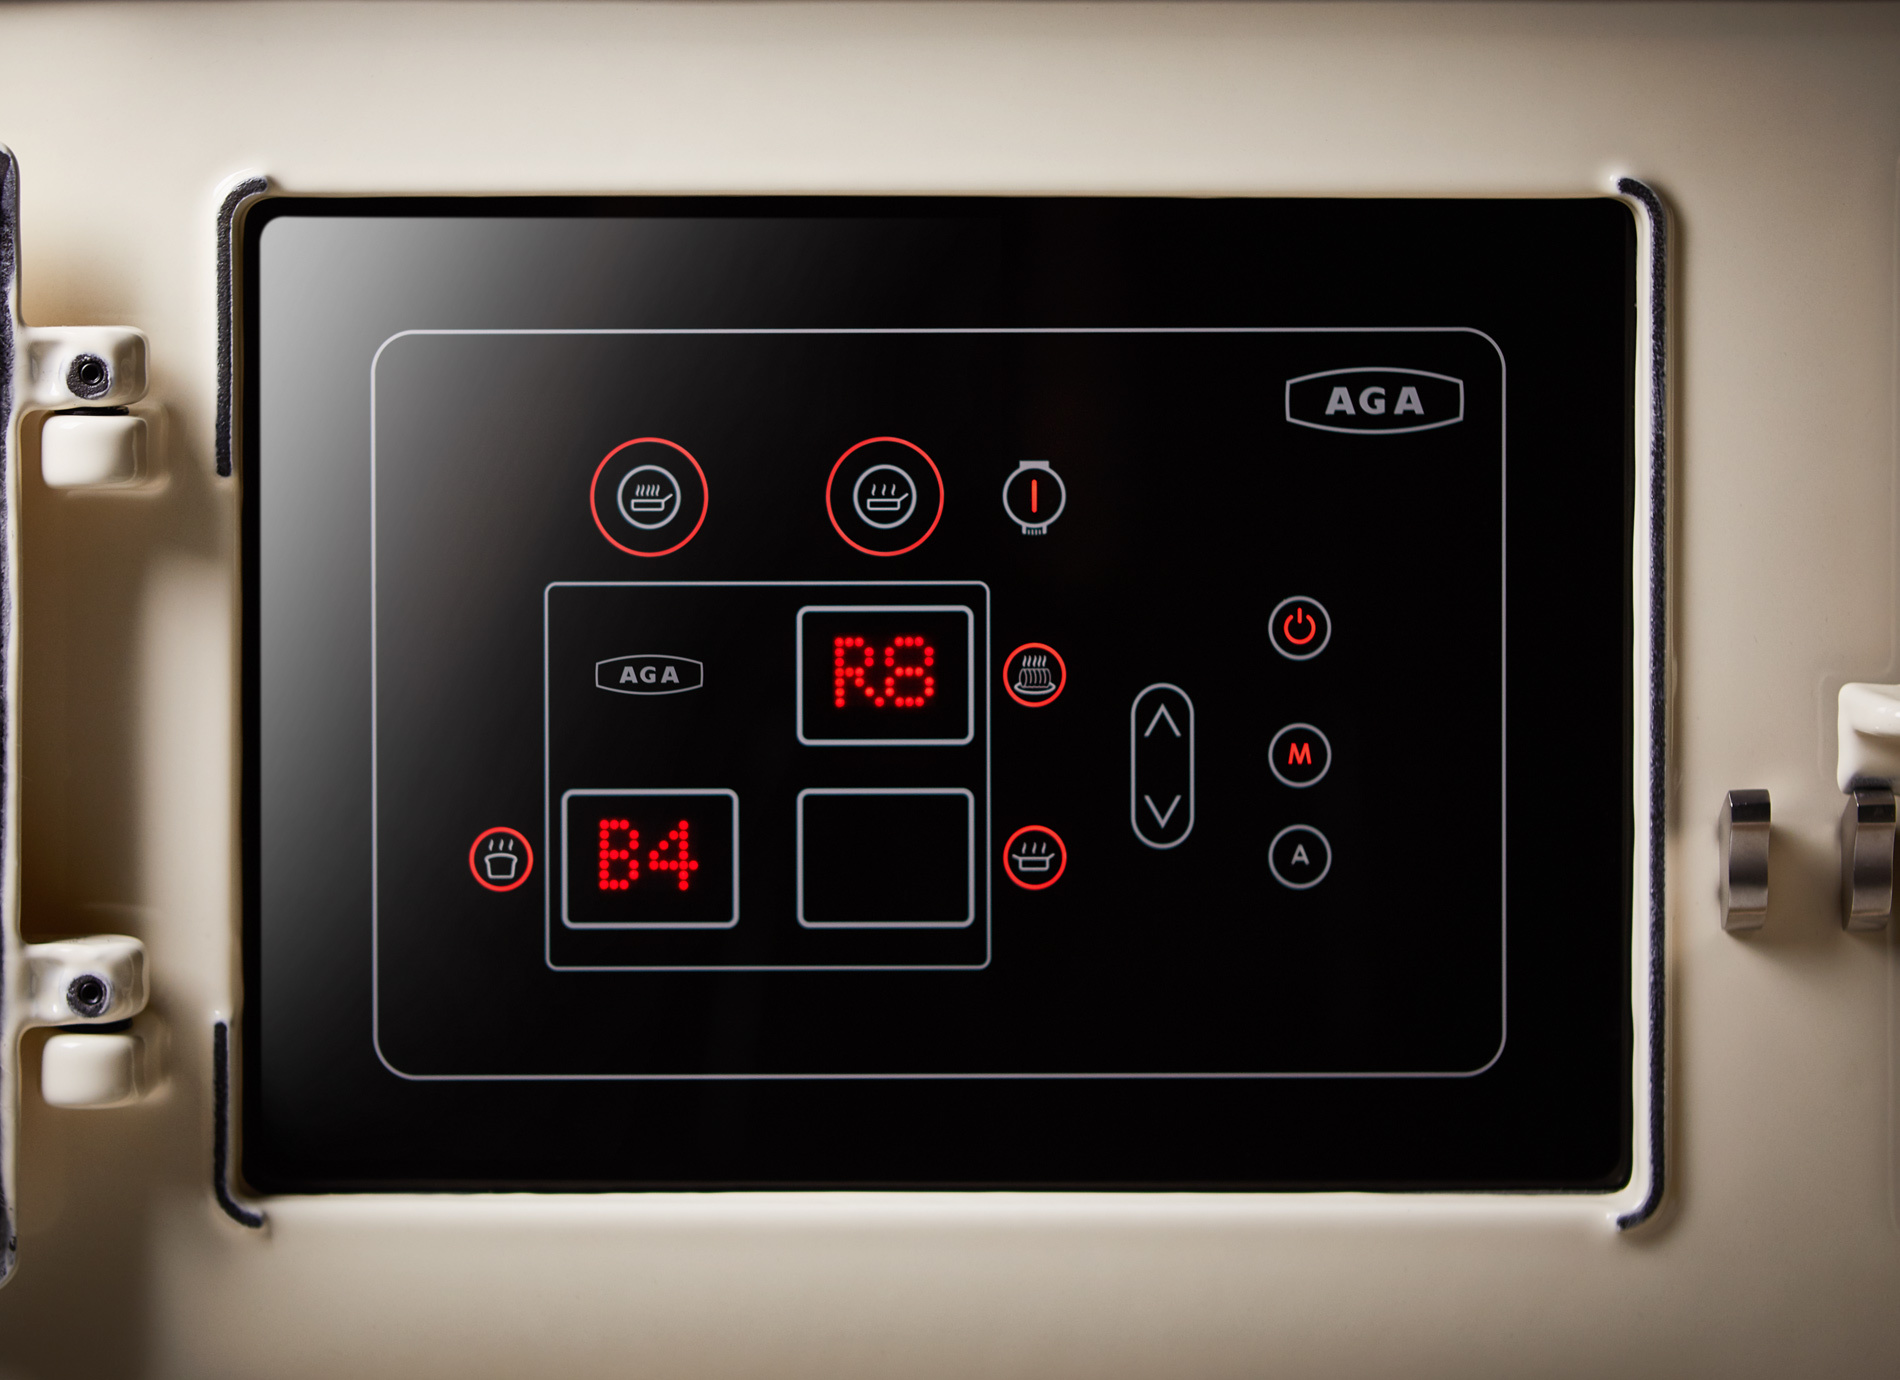 eR7 Control Panel showing temperature settings